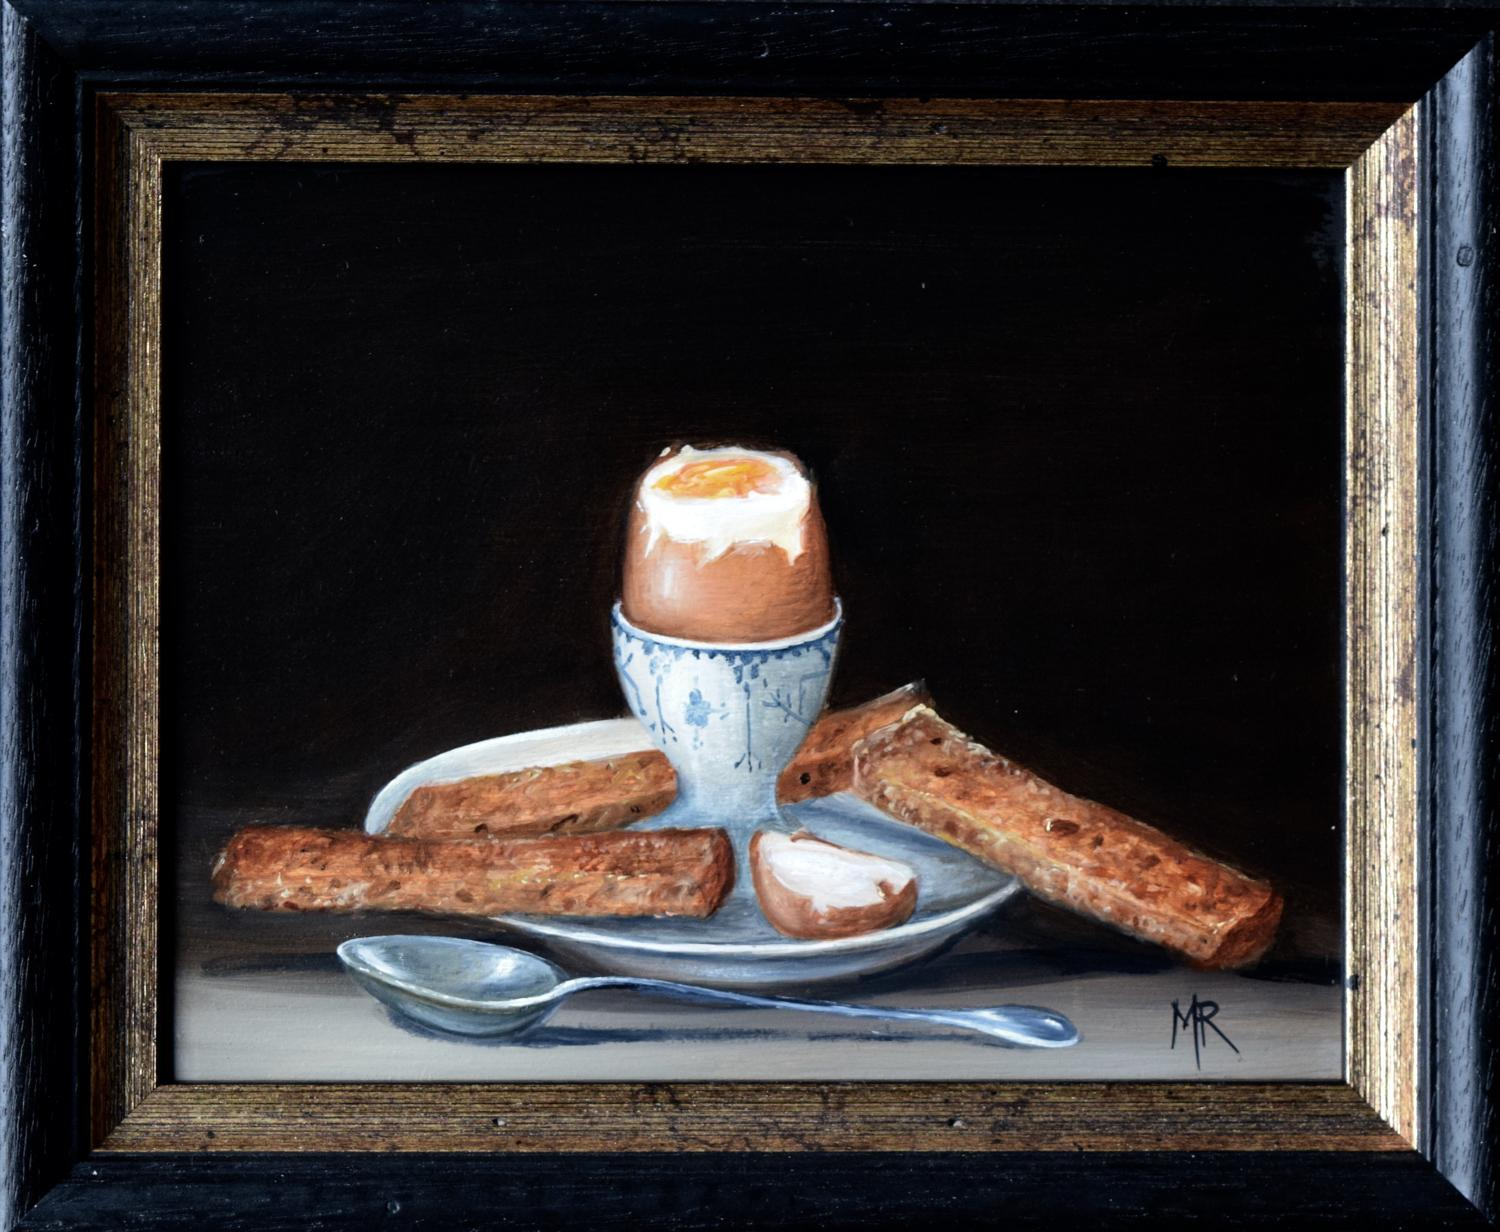 Boiled egg and soldiers.